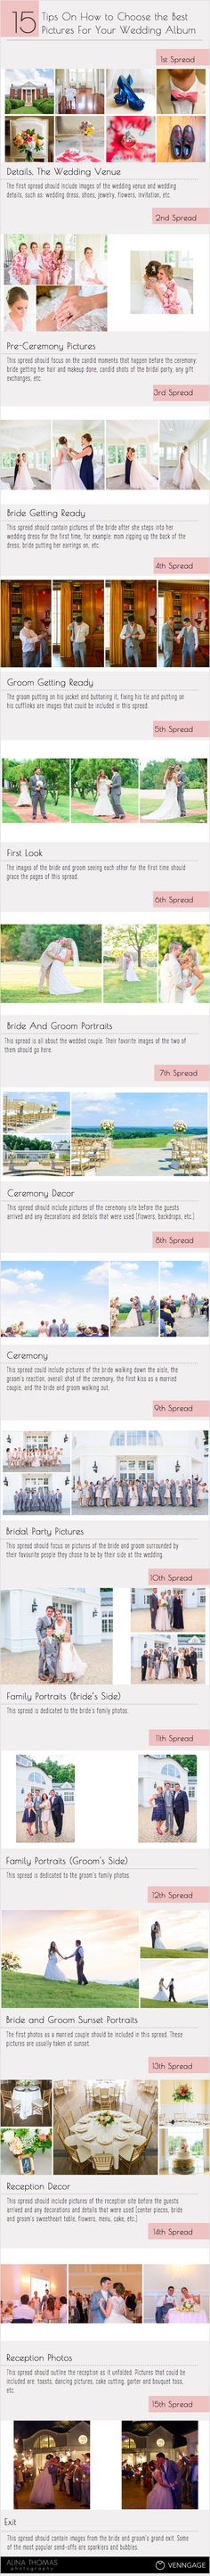 How to choose the perfect pictures for your wedding album. Wedding album infographic for photographers by Alina Thomas Photography. www.alinathomas.com                                                                                                                                                                                 More